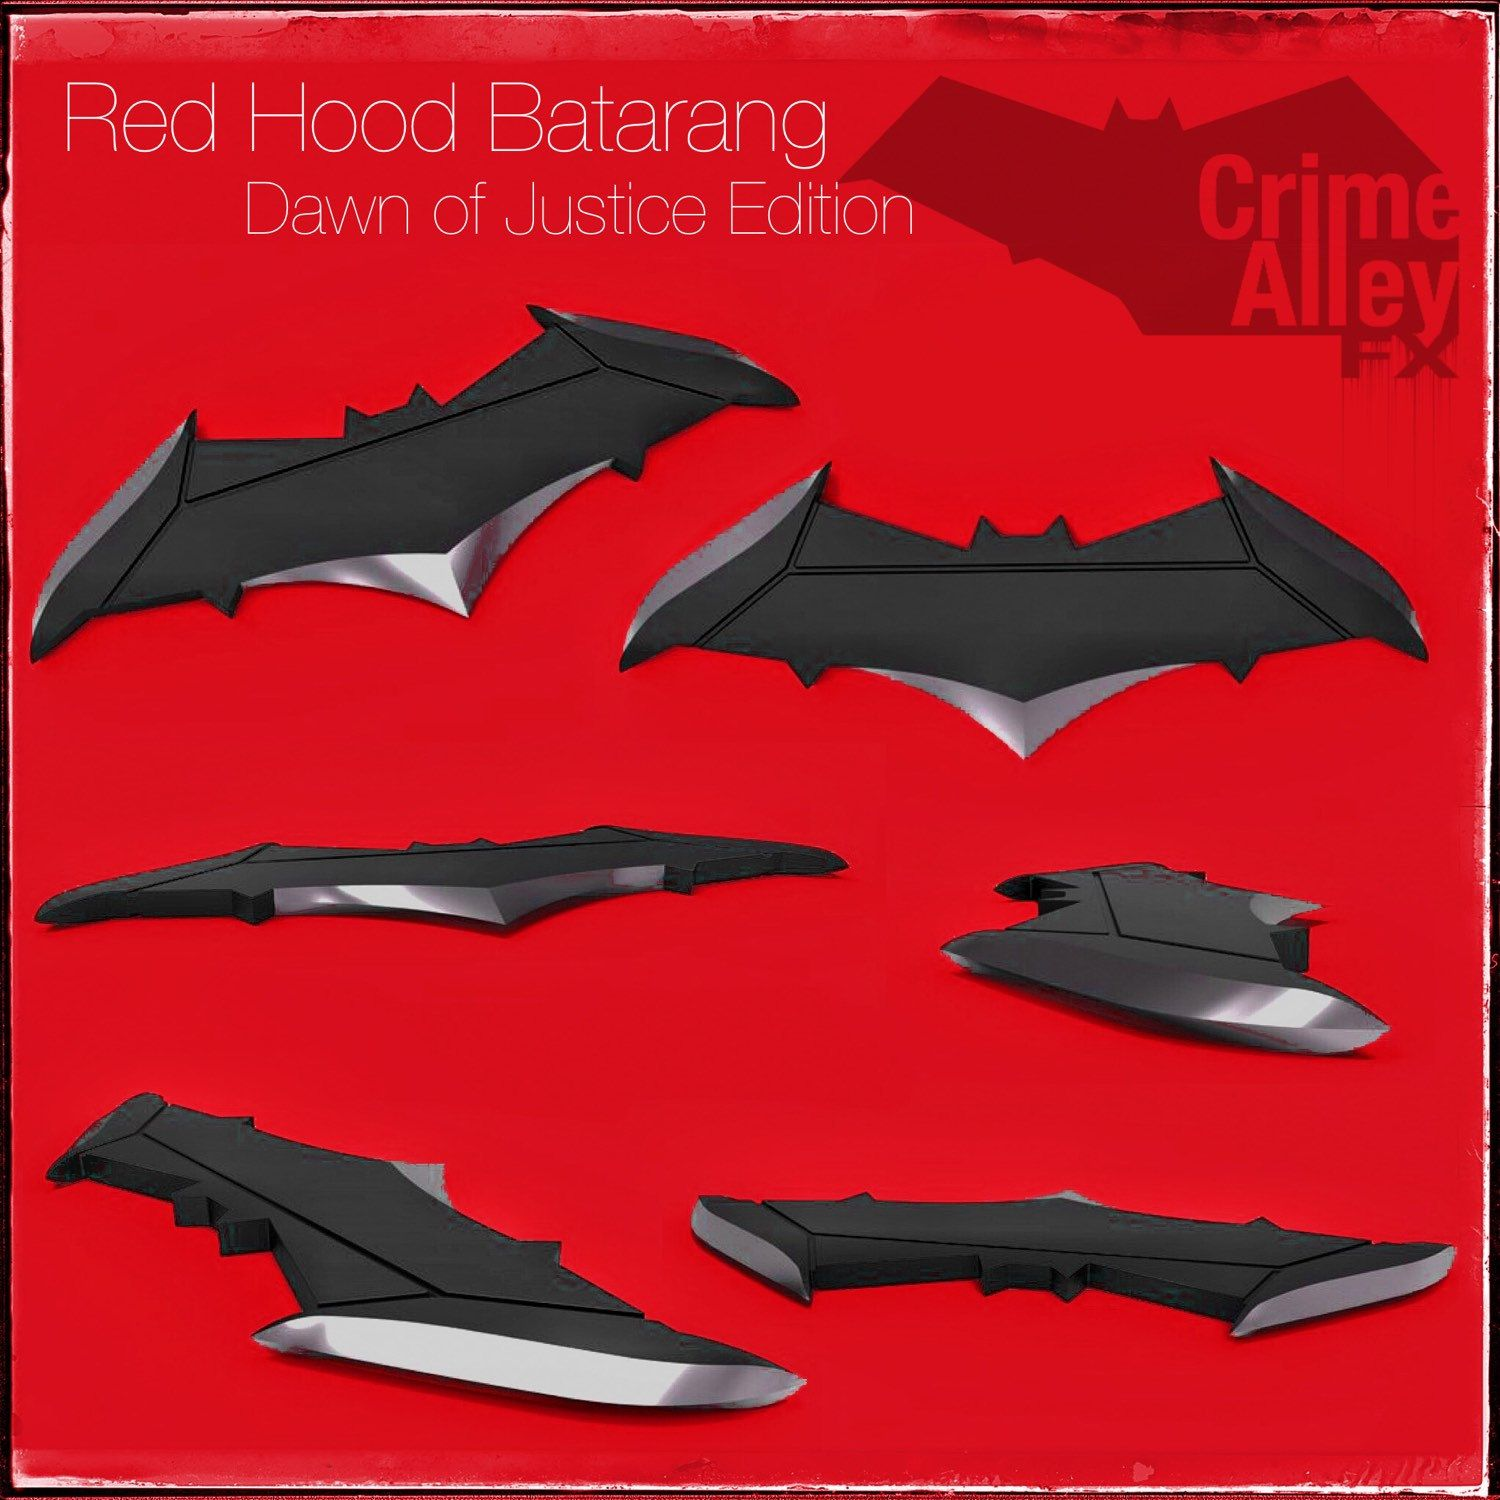 Batman Under The Red Hood Concept Art Batarang